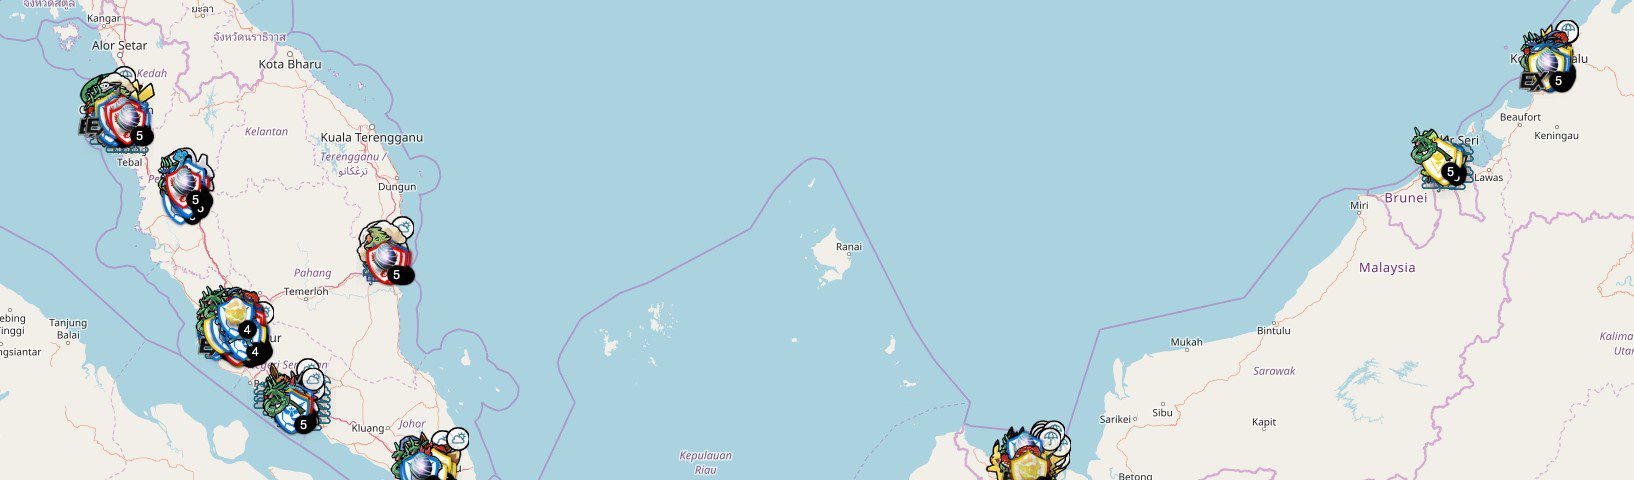 S2G MY Malaysia Live Pokemon Go Map - Main page - S2G